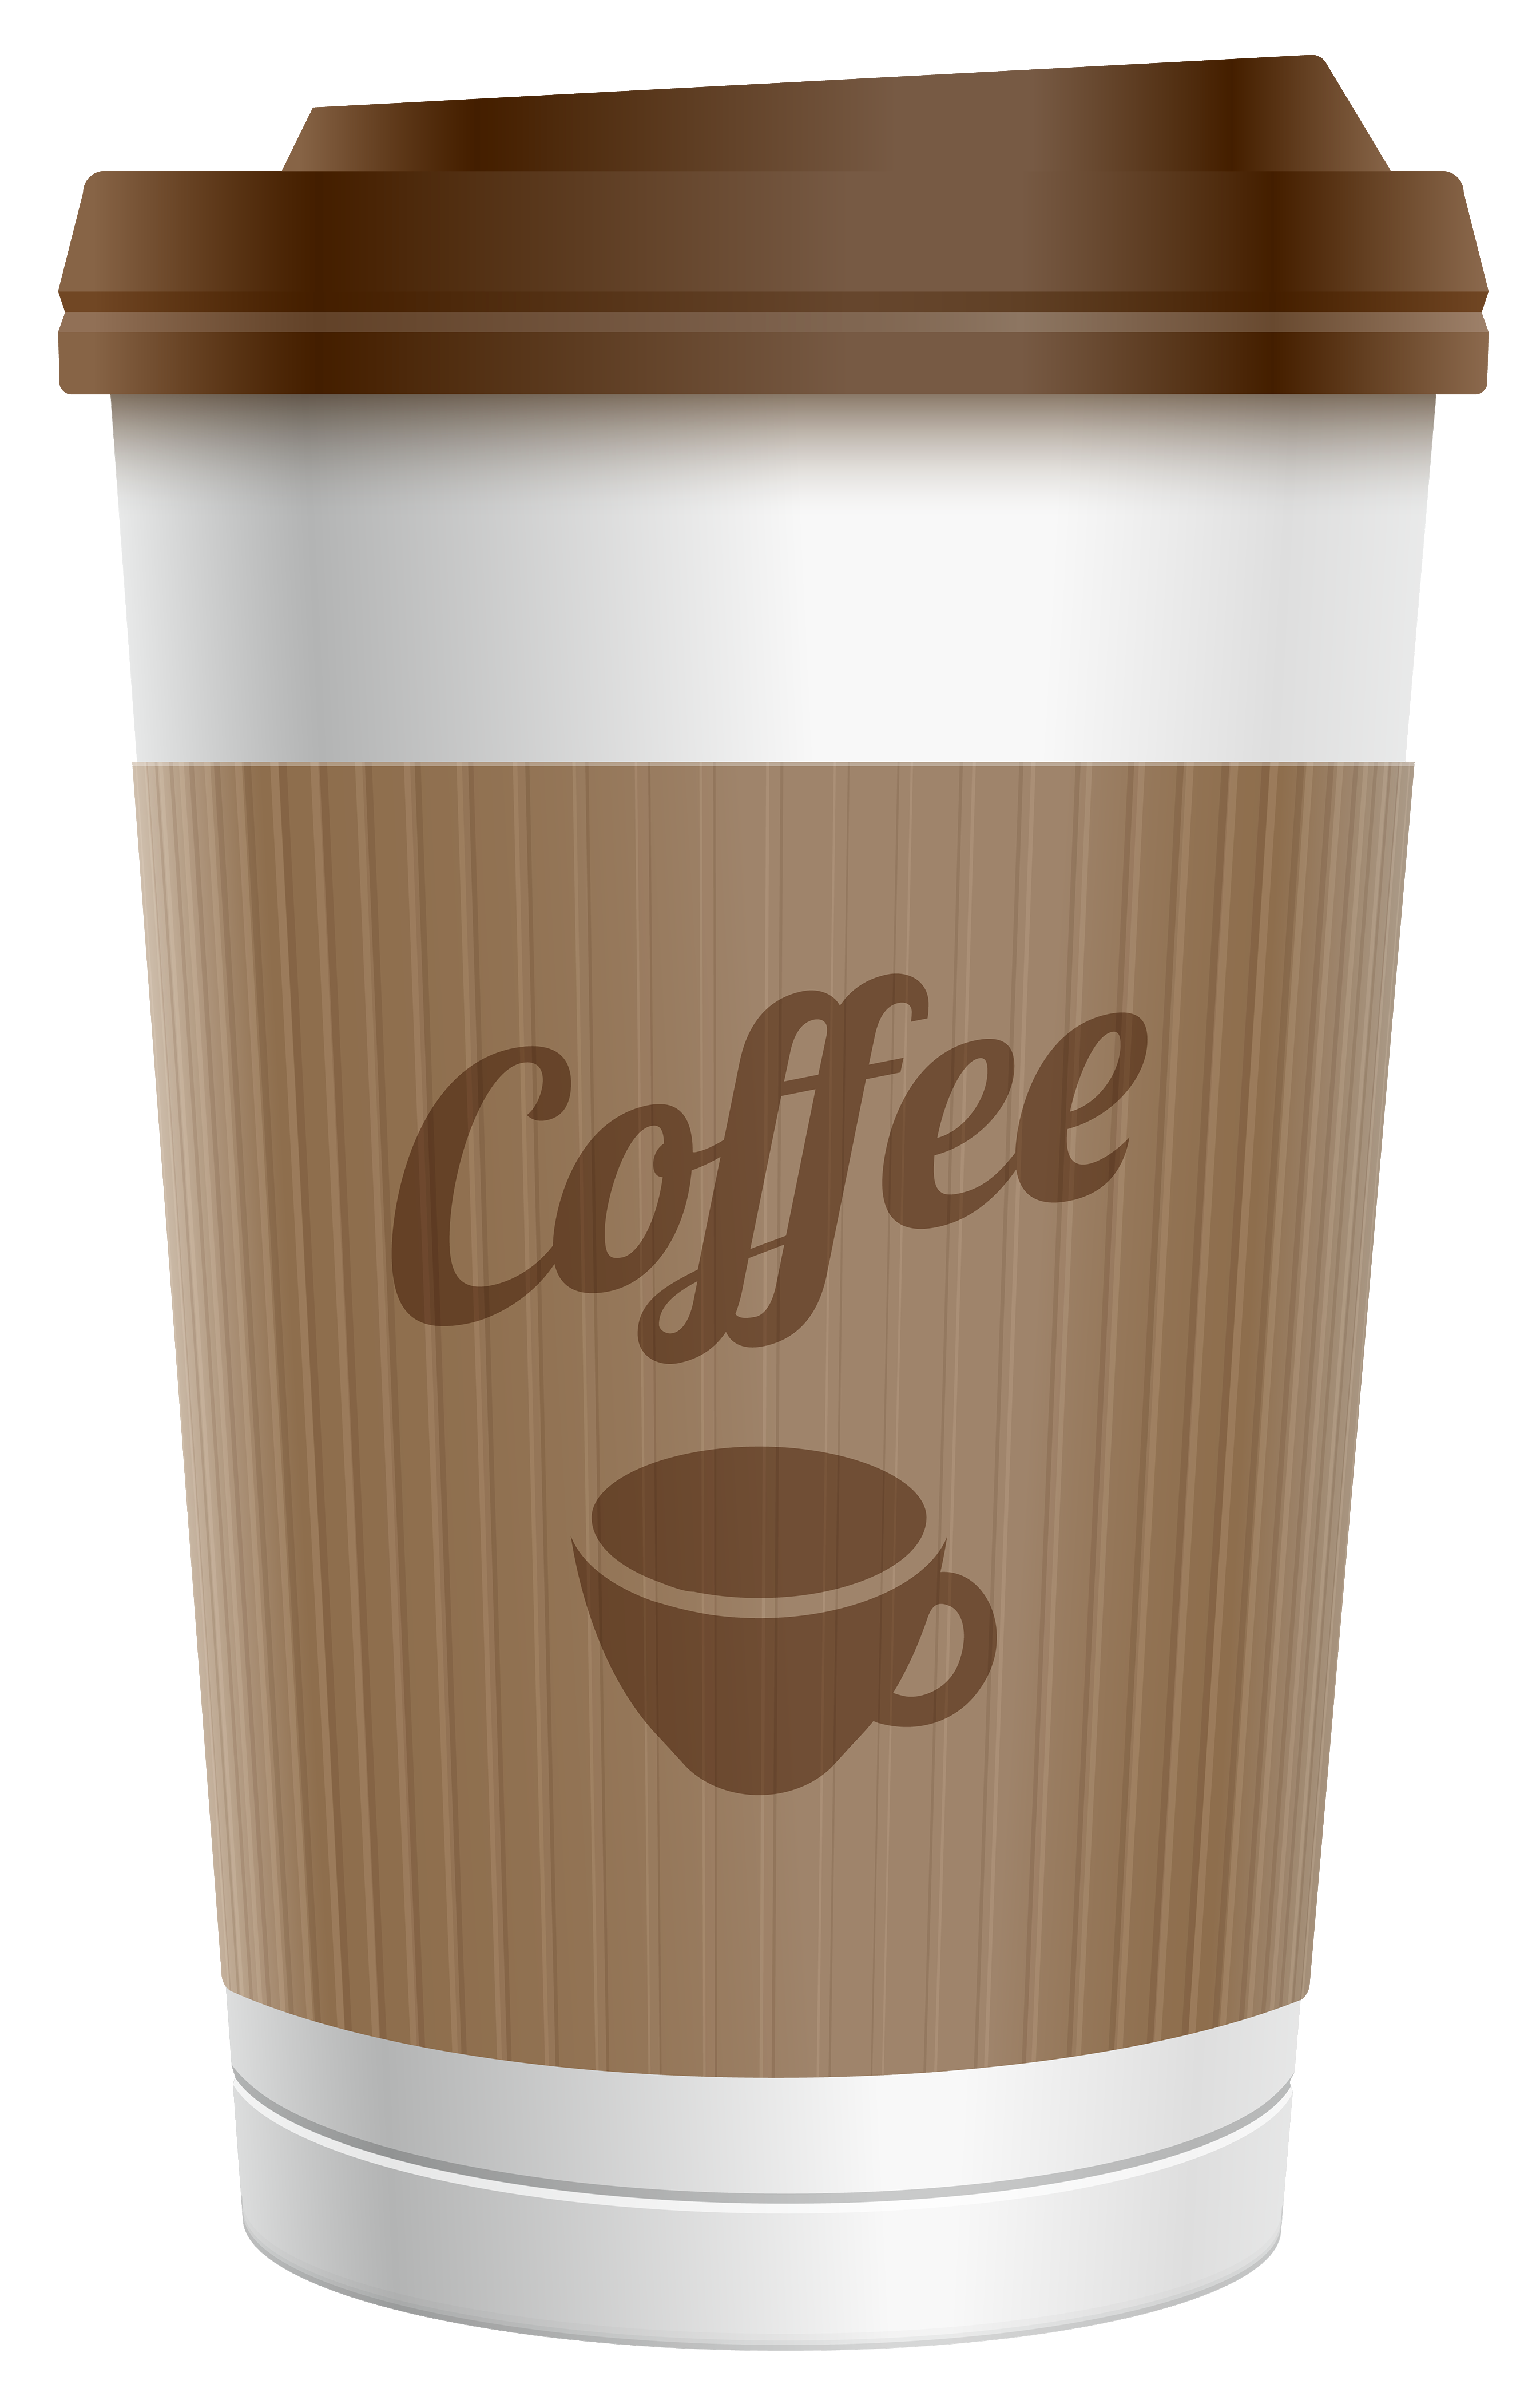 Beverage cup clipart graphic royalty free Coffee Cup Clip Art | coffee Clip Art | Plastic coffee cups, Coffee ... graphic royalty free